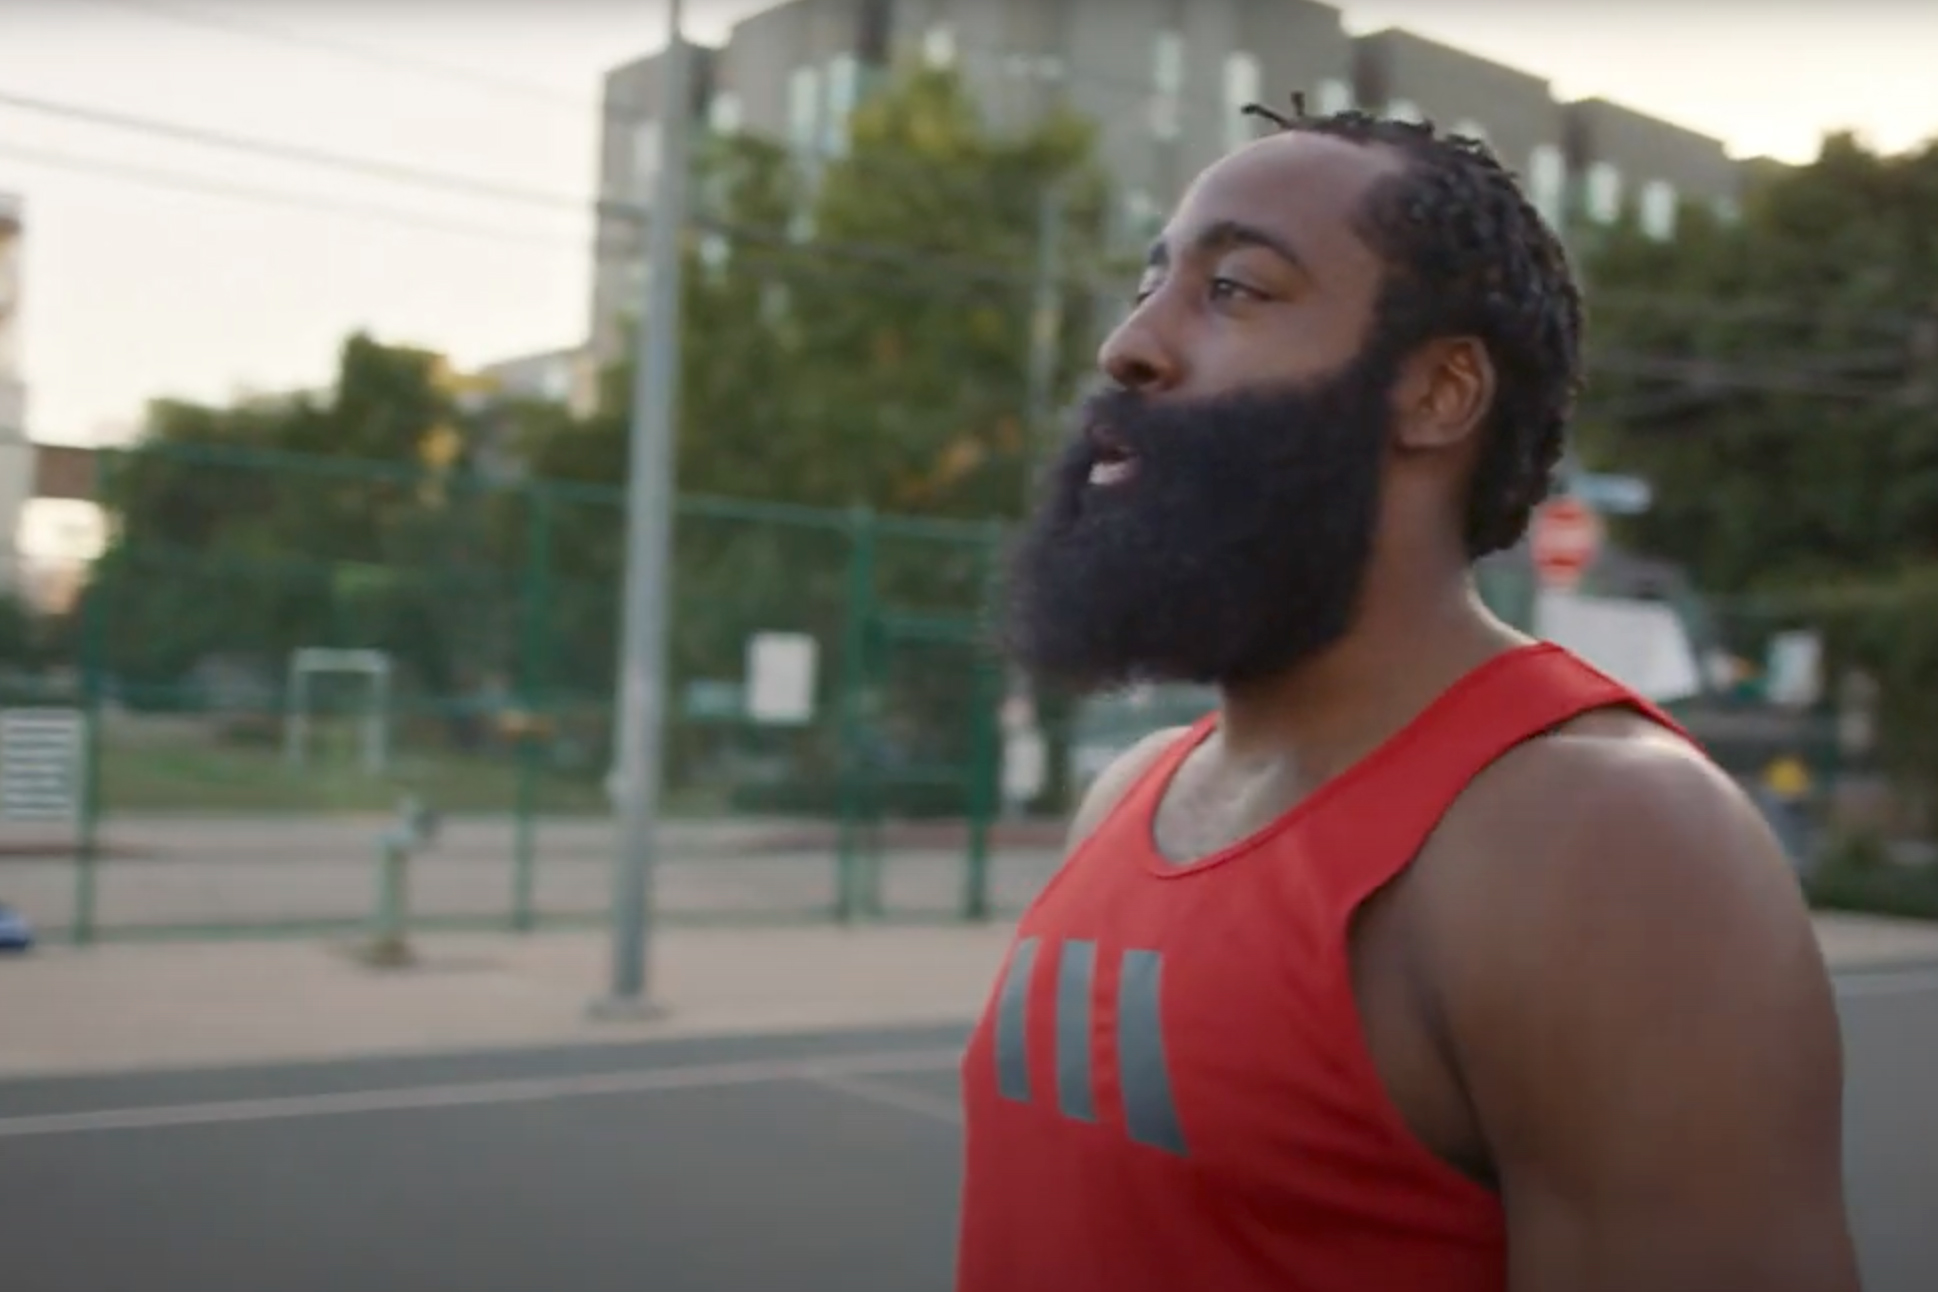 Watch the newest commercials on TV from Tylenol, Bodyarmor, AT&T and more